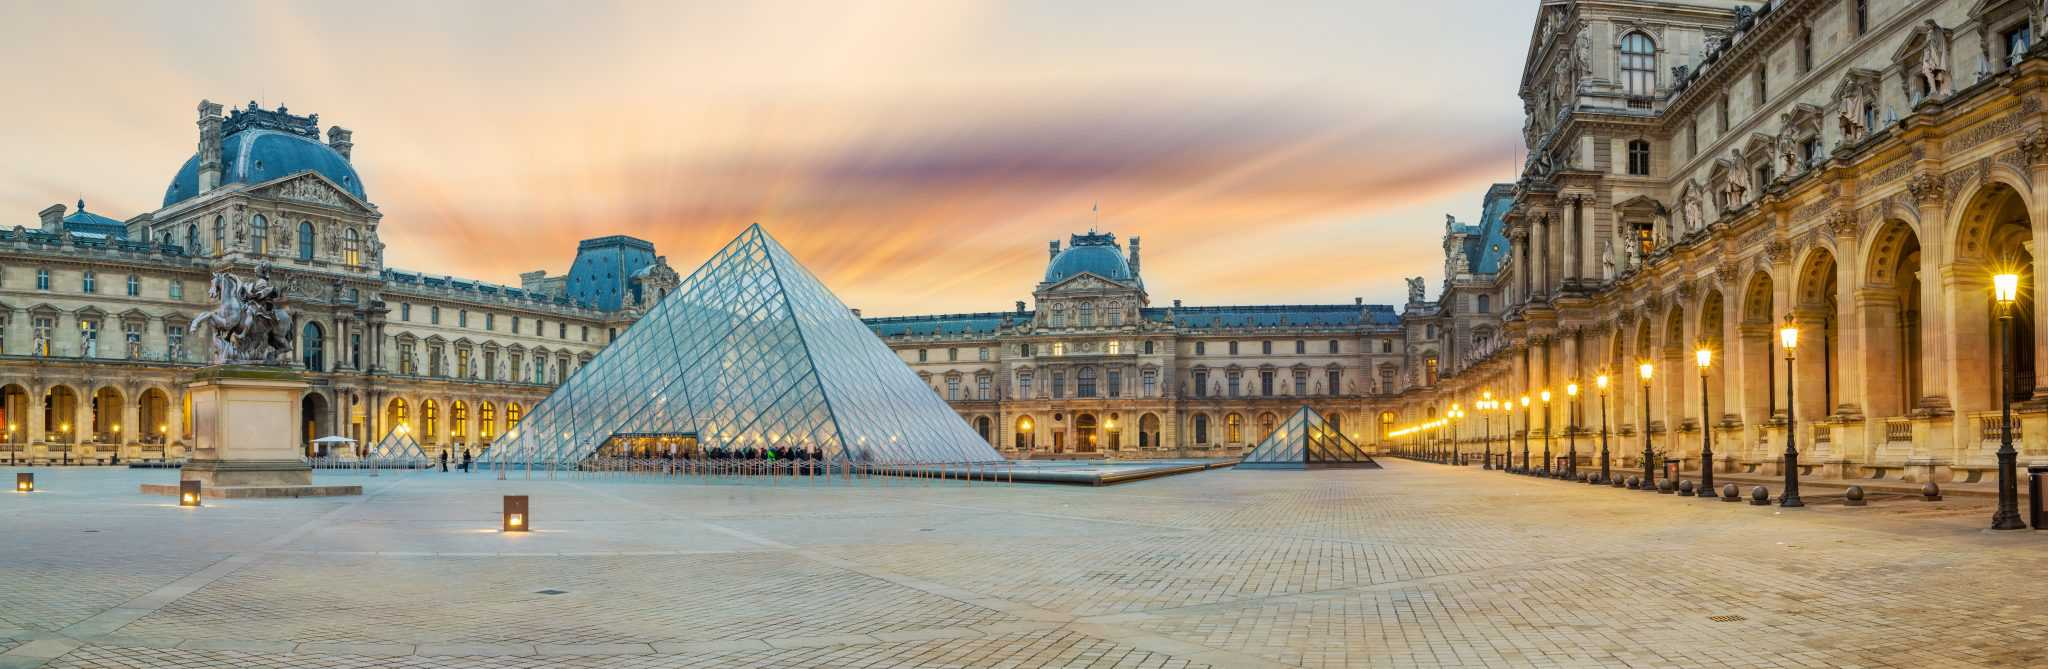 The Louvre Museum Exterior, 4 days in Paris things to do